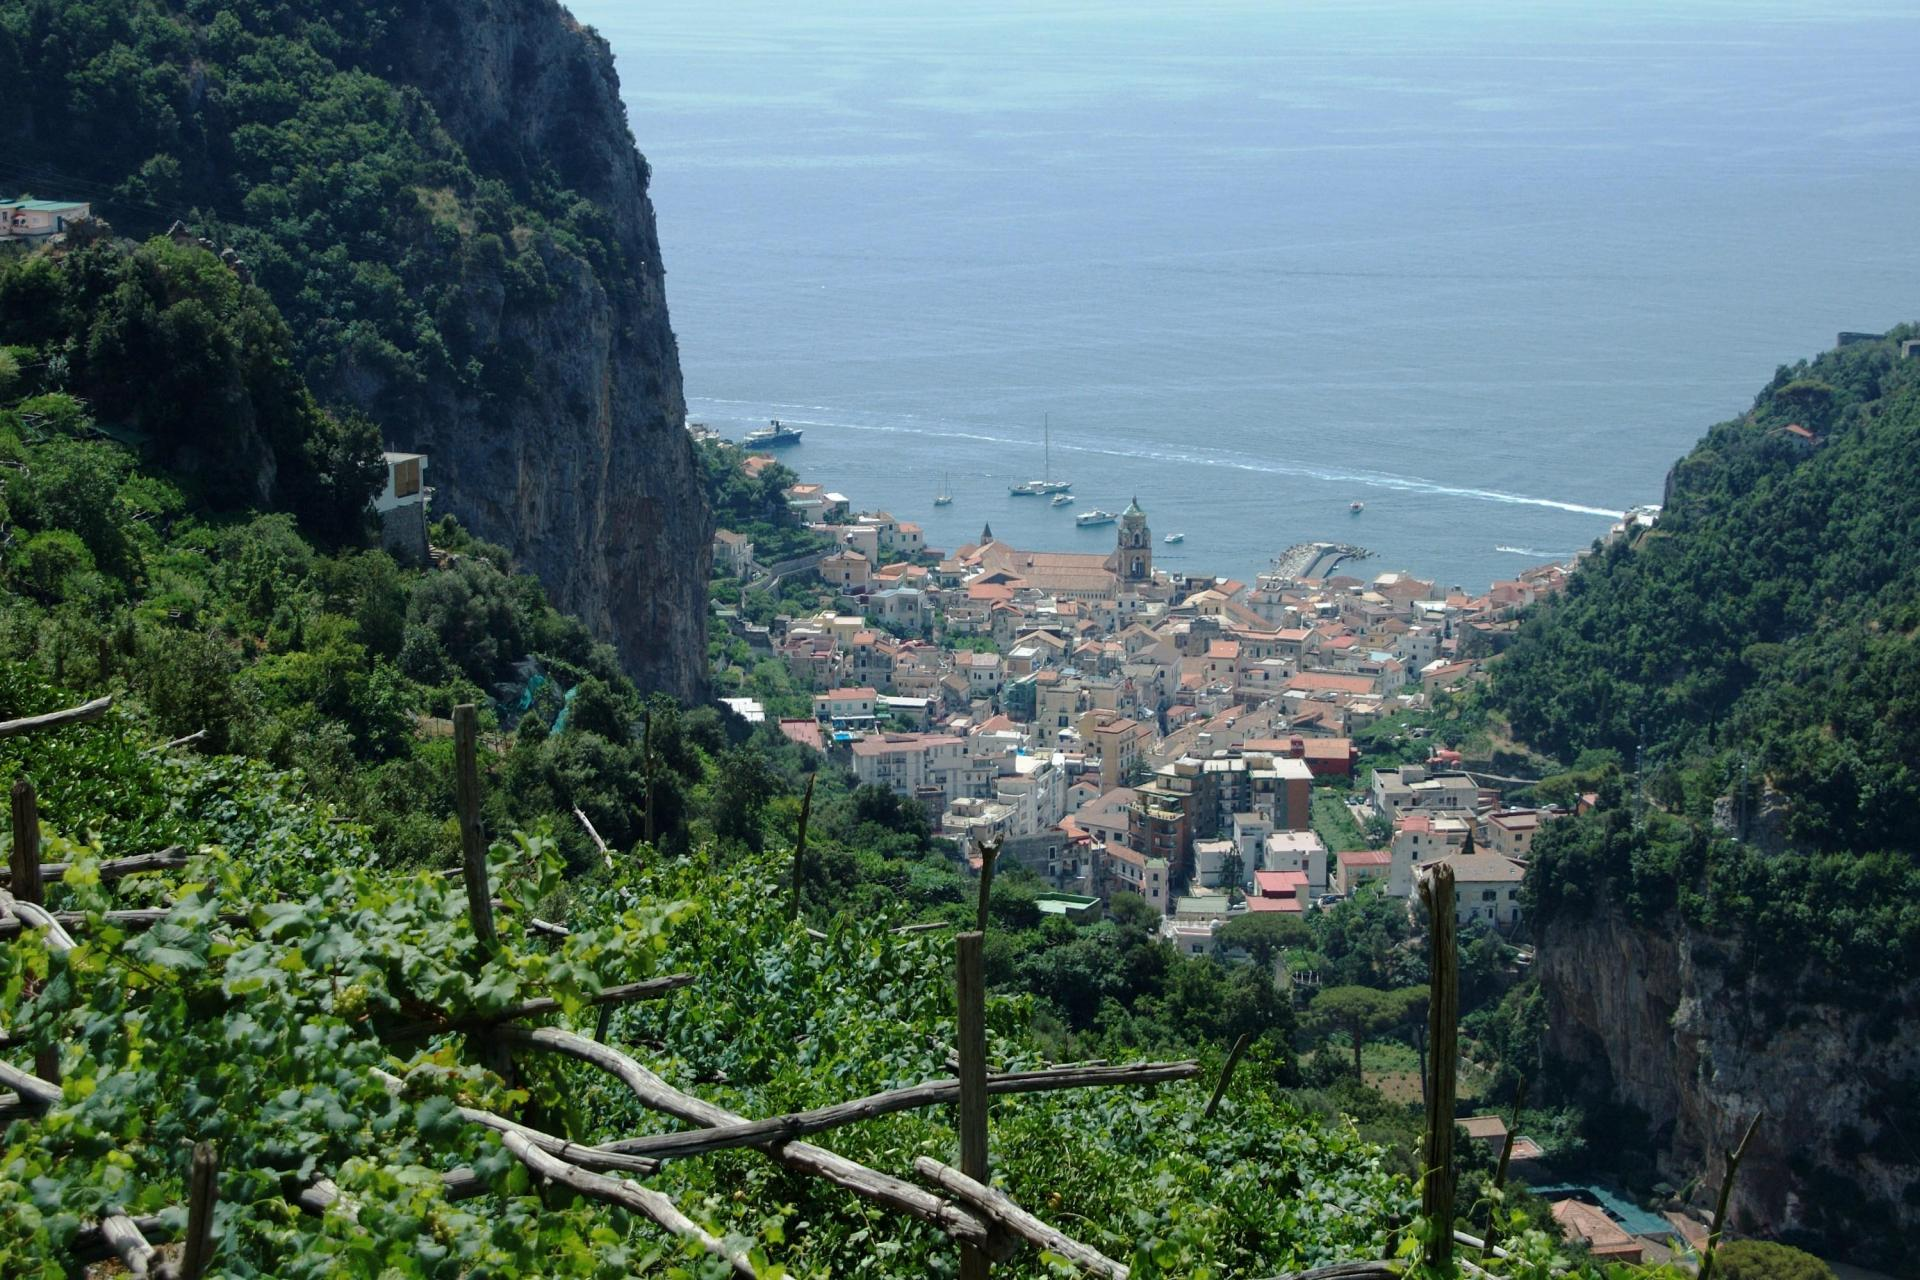 Amalfi coast hiking tour of Italy, self guided freedom to go any date!